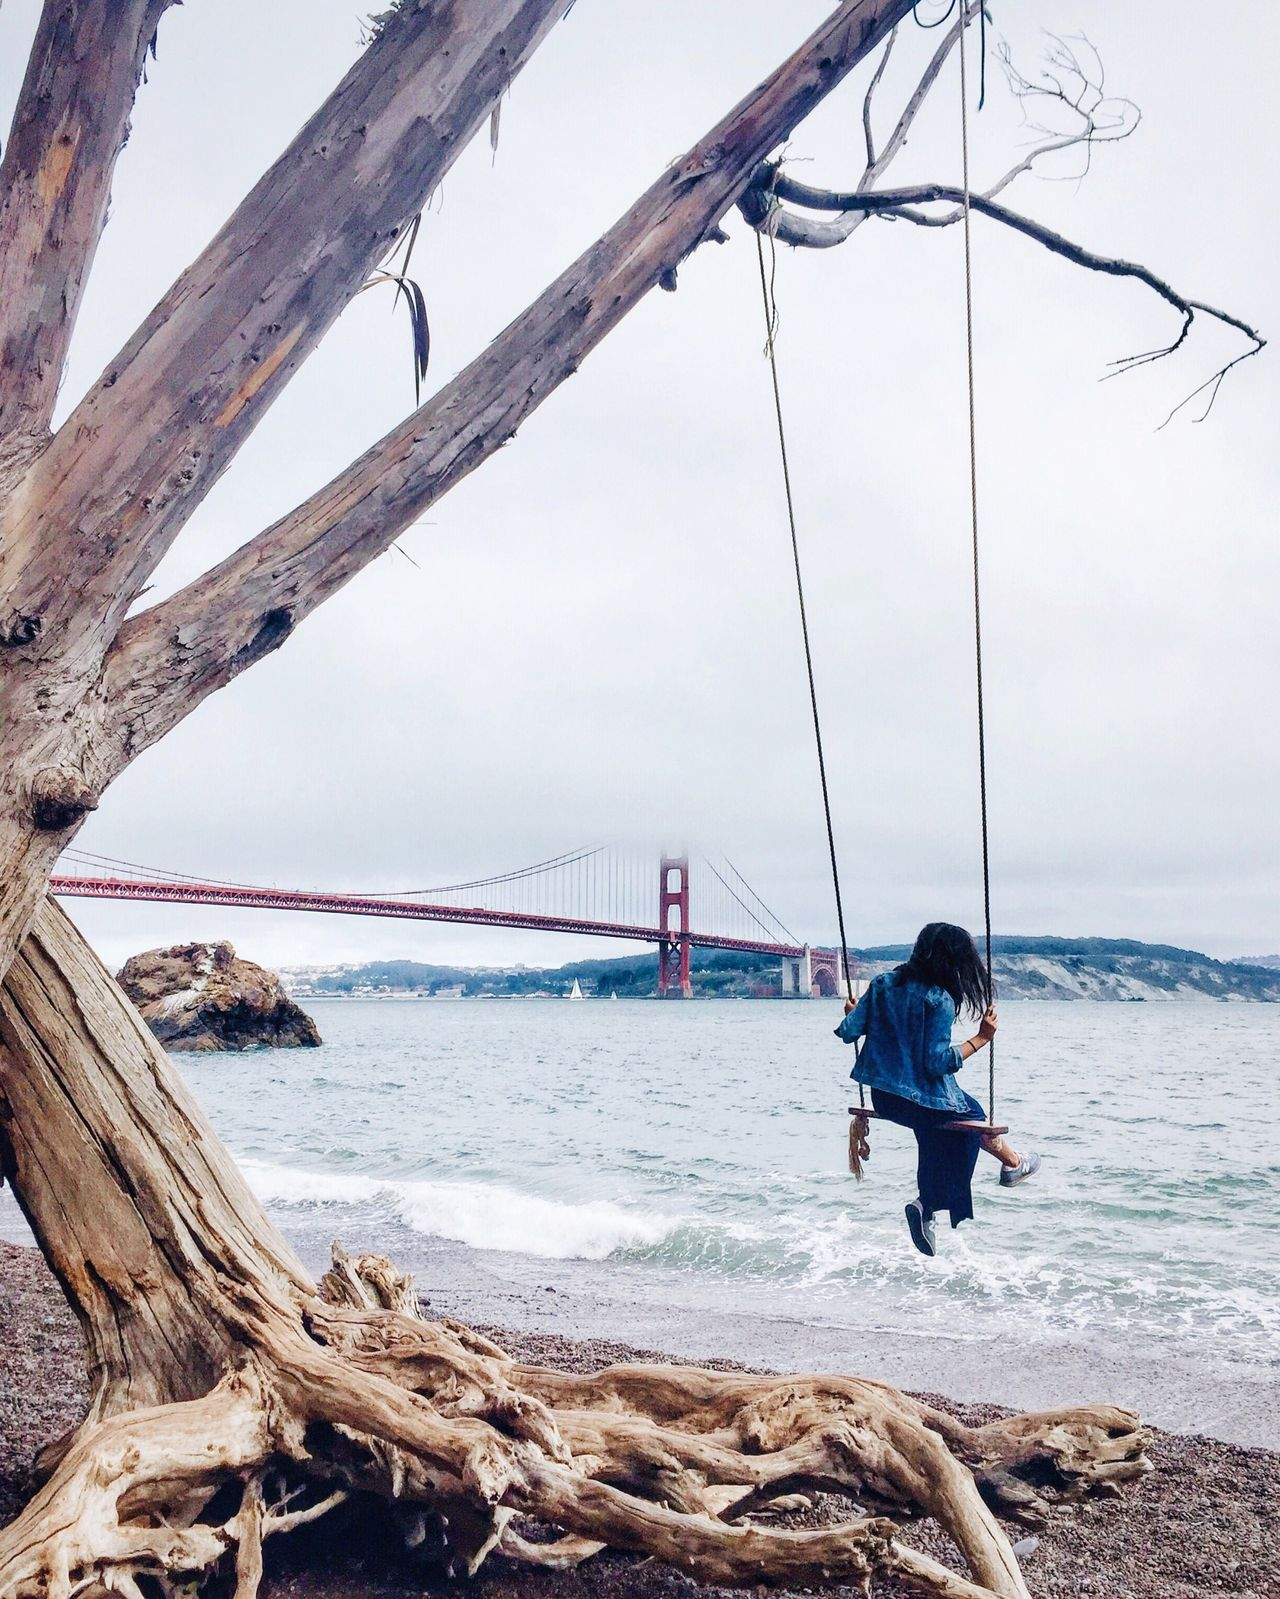 Woman enjoying swing at beach by golden gate bridge against sky